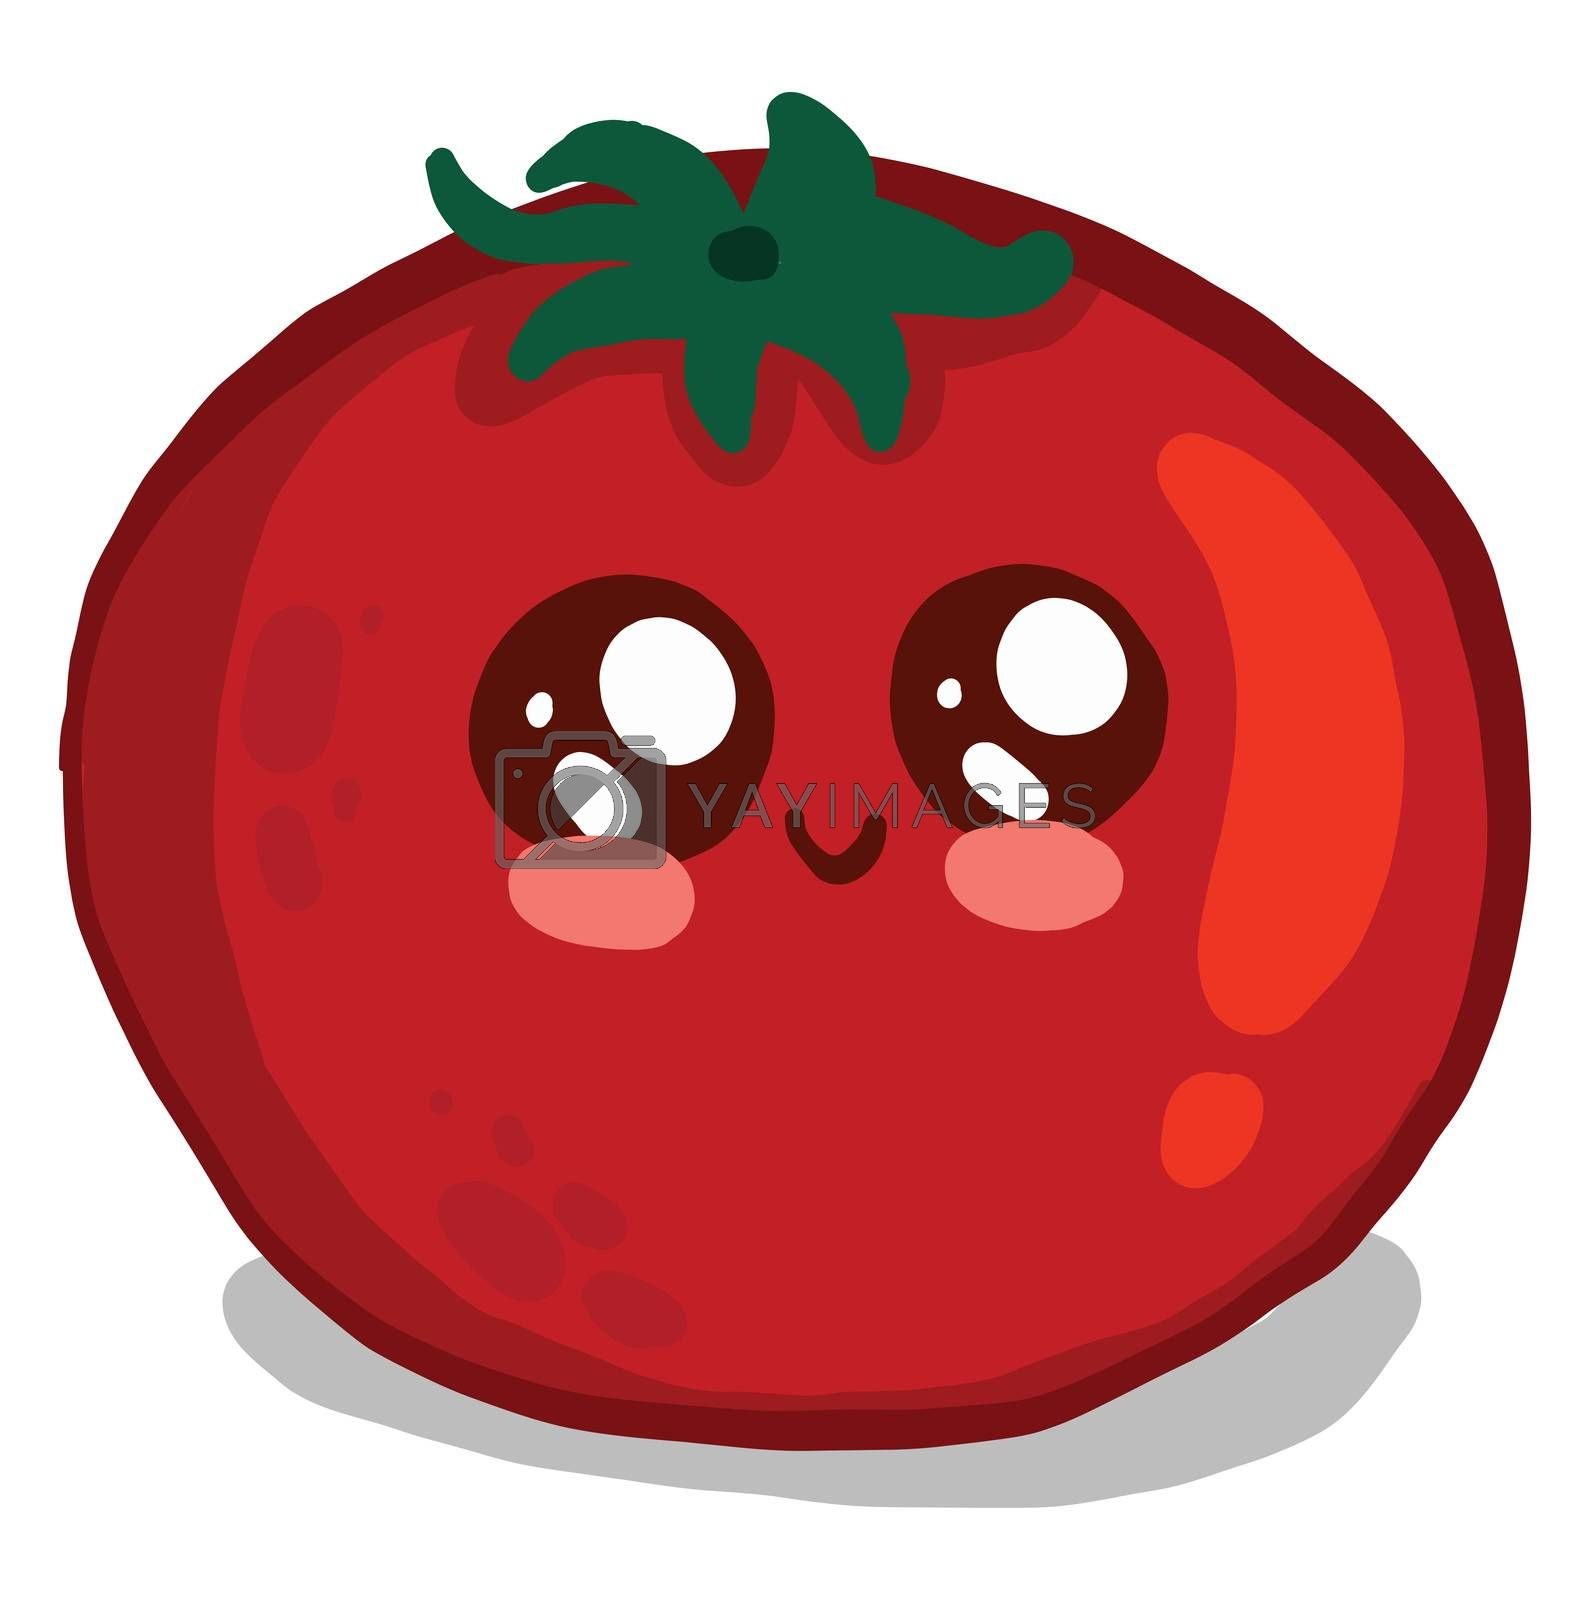 Cute red tomato , illustration, vector on white background